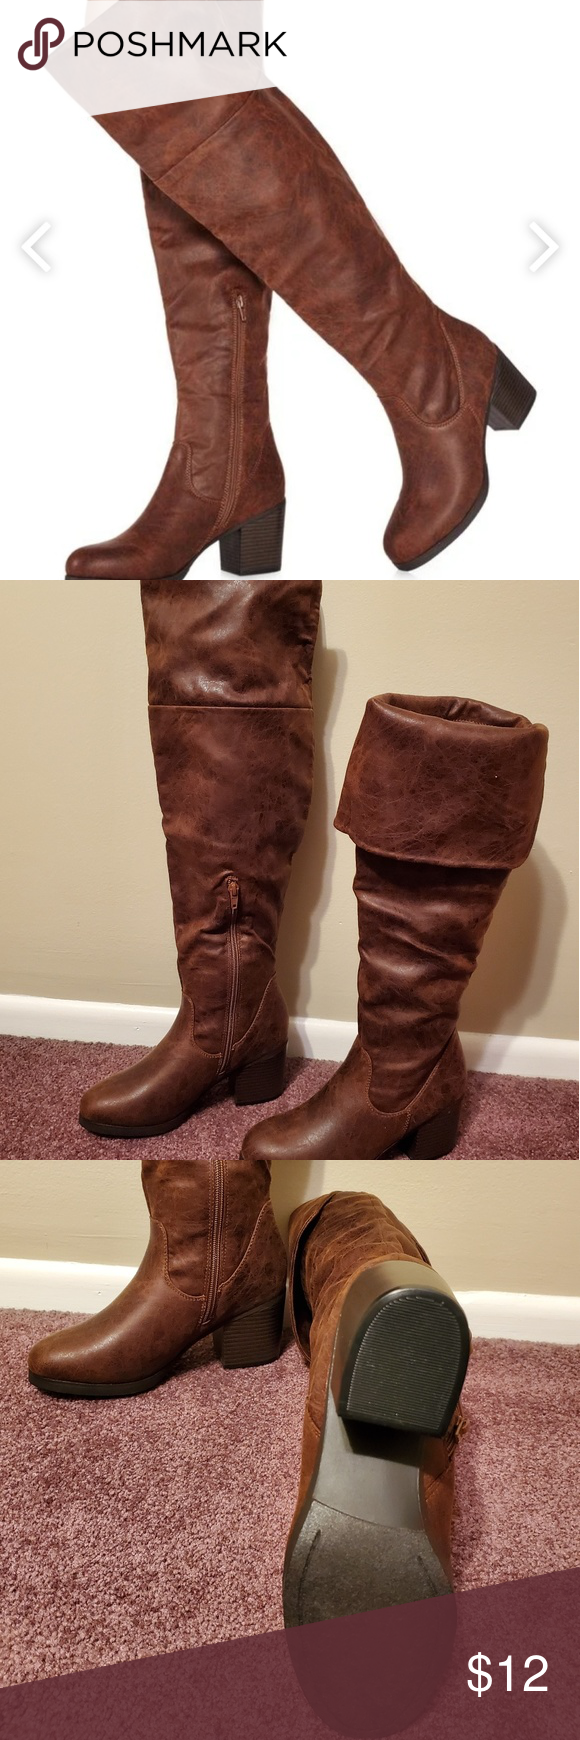 21c1722e31c3 OTK boots NWT; Justfab Norra in Brown. Wide Calf. Foldover or wear OTK